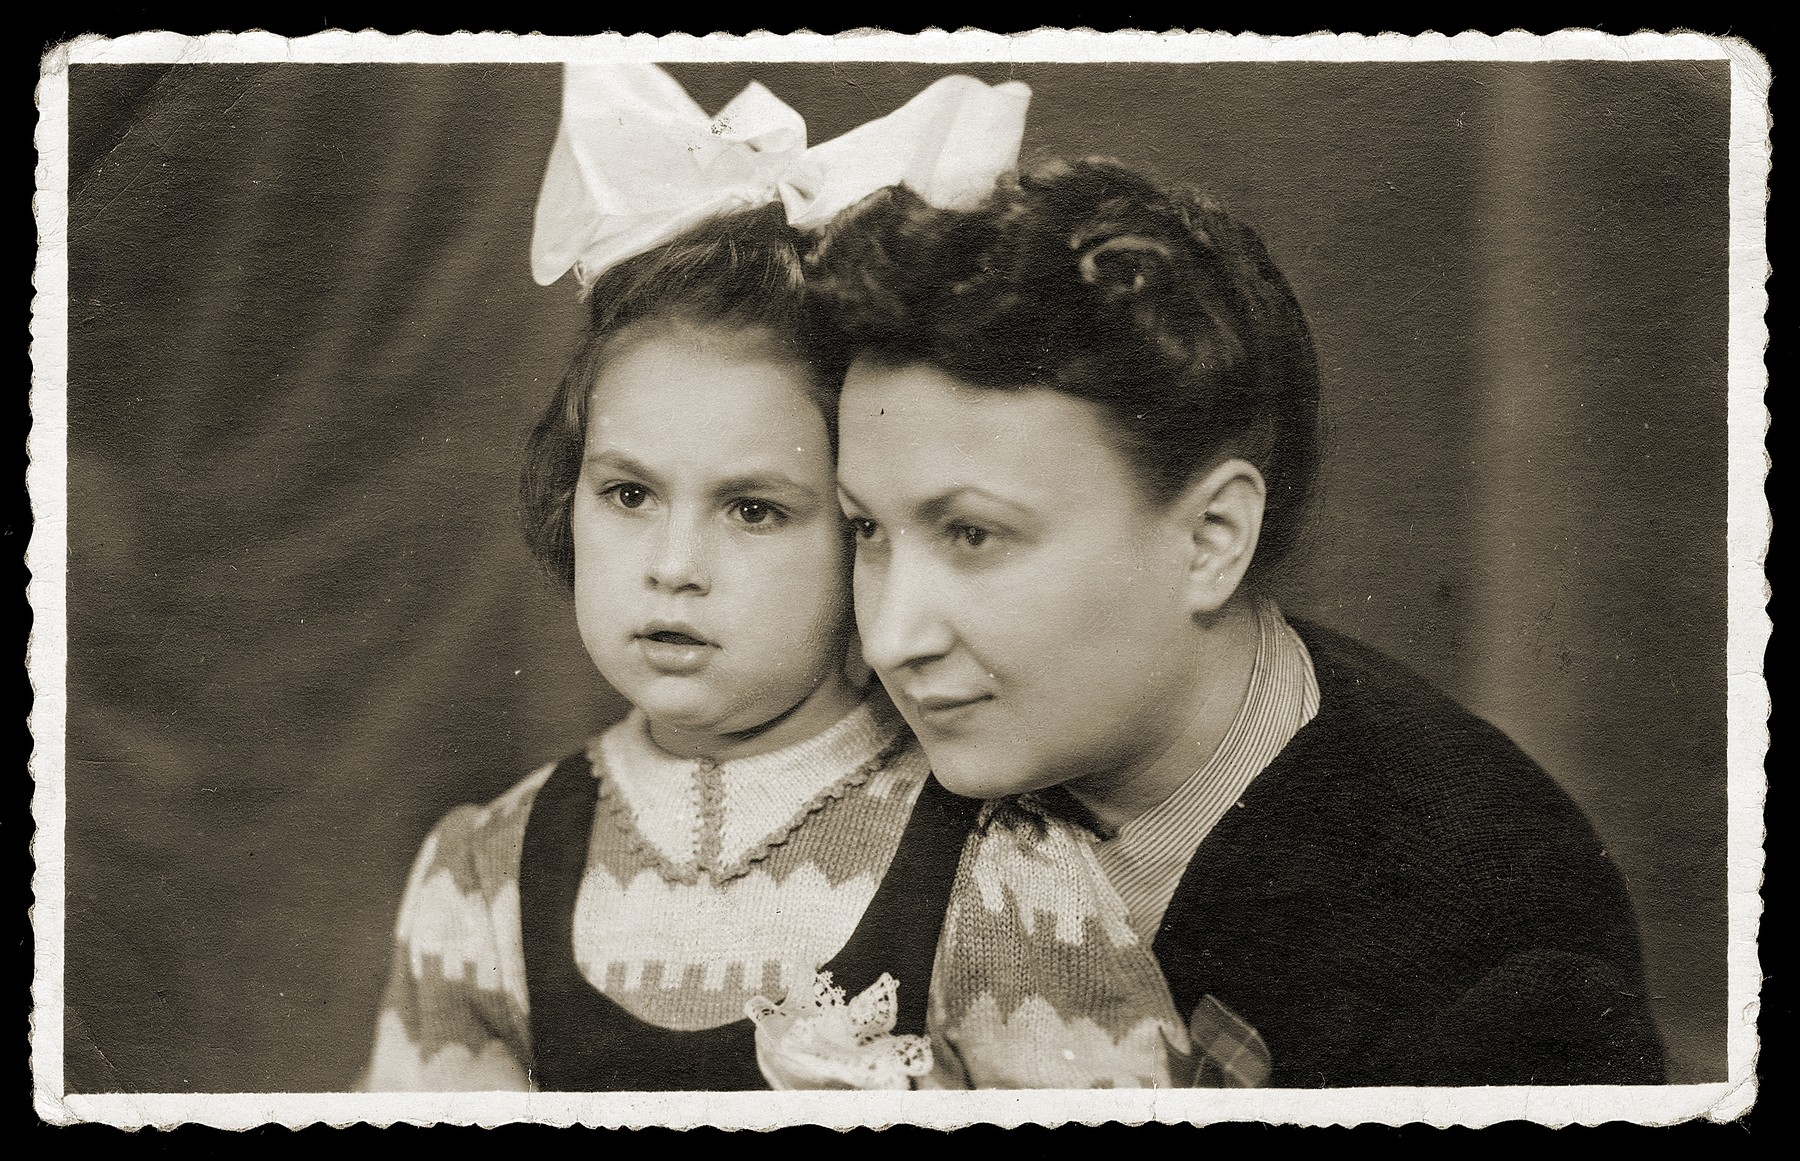 Studio portrait of a mother and daughter in the Bedzin ghetto.  Pictured is Dora Rembiszewska, with her four-year-old daughter, Mira.